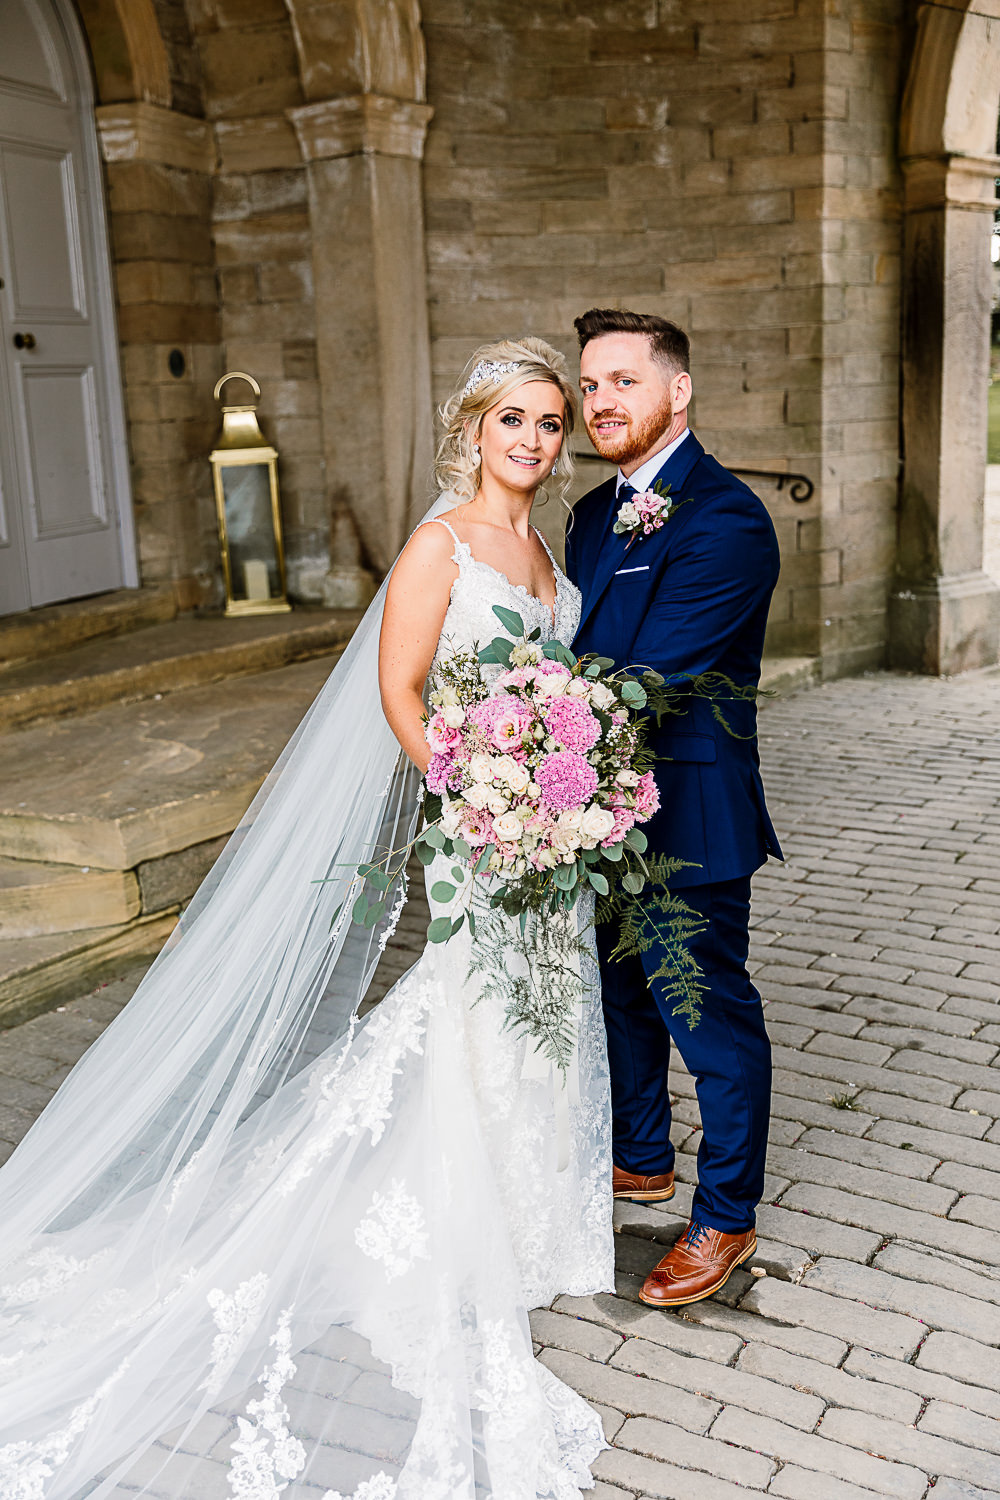 Bride Bridal Dress Gown Spaghetti Strap Lace Train Veil Hair Piece Navy Suit Groom Pink White Large Eucalyptus Bouquet Lartington Hall Wedding Hayley Baxter Photography